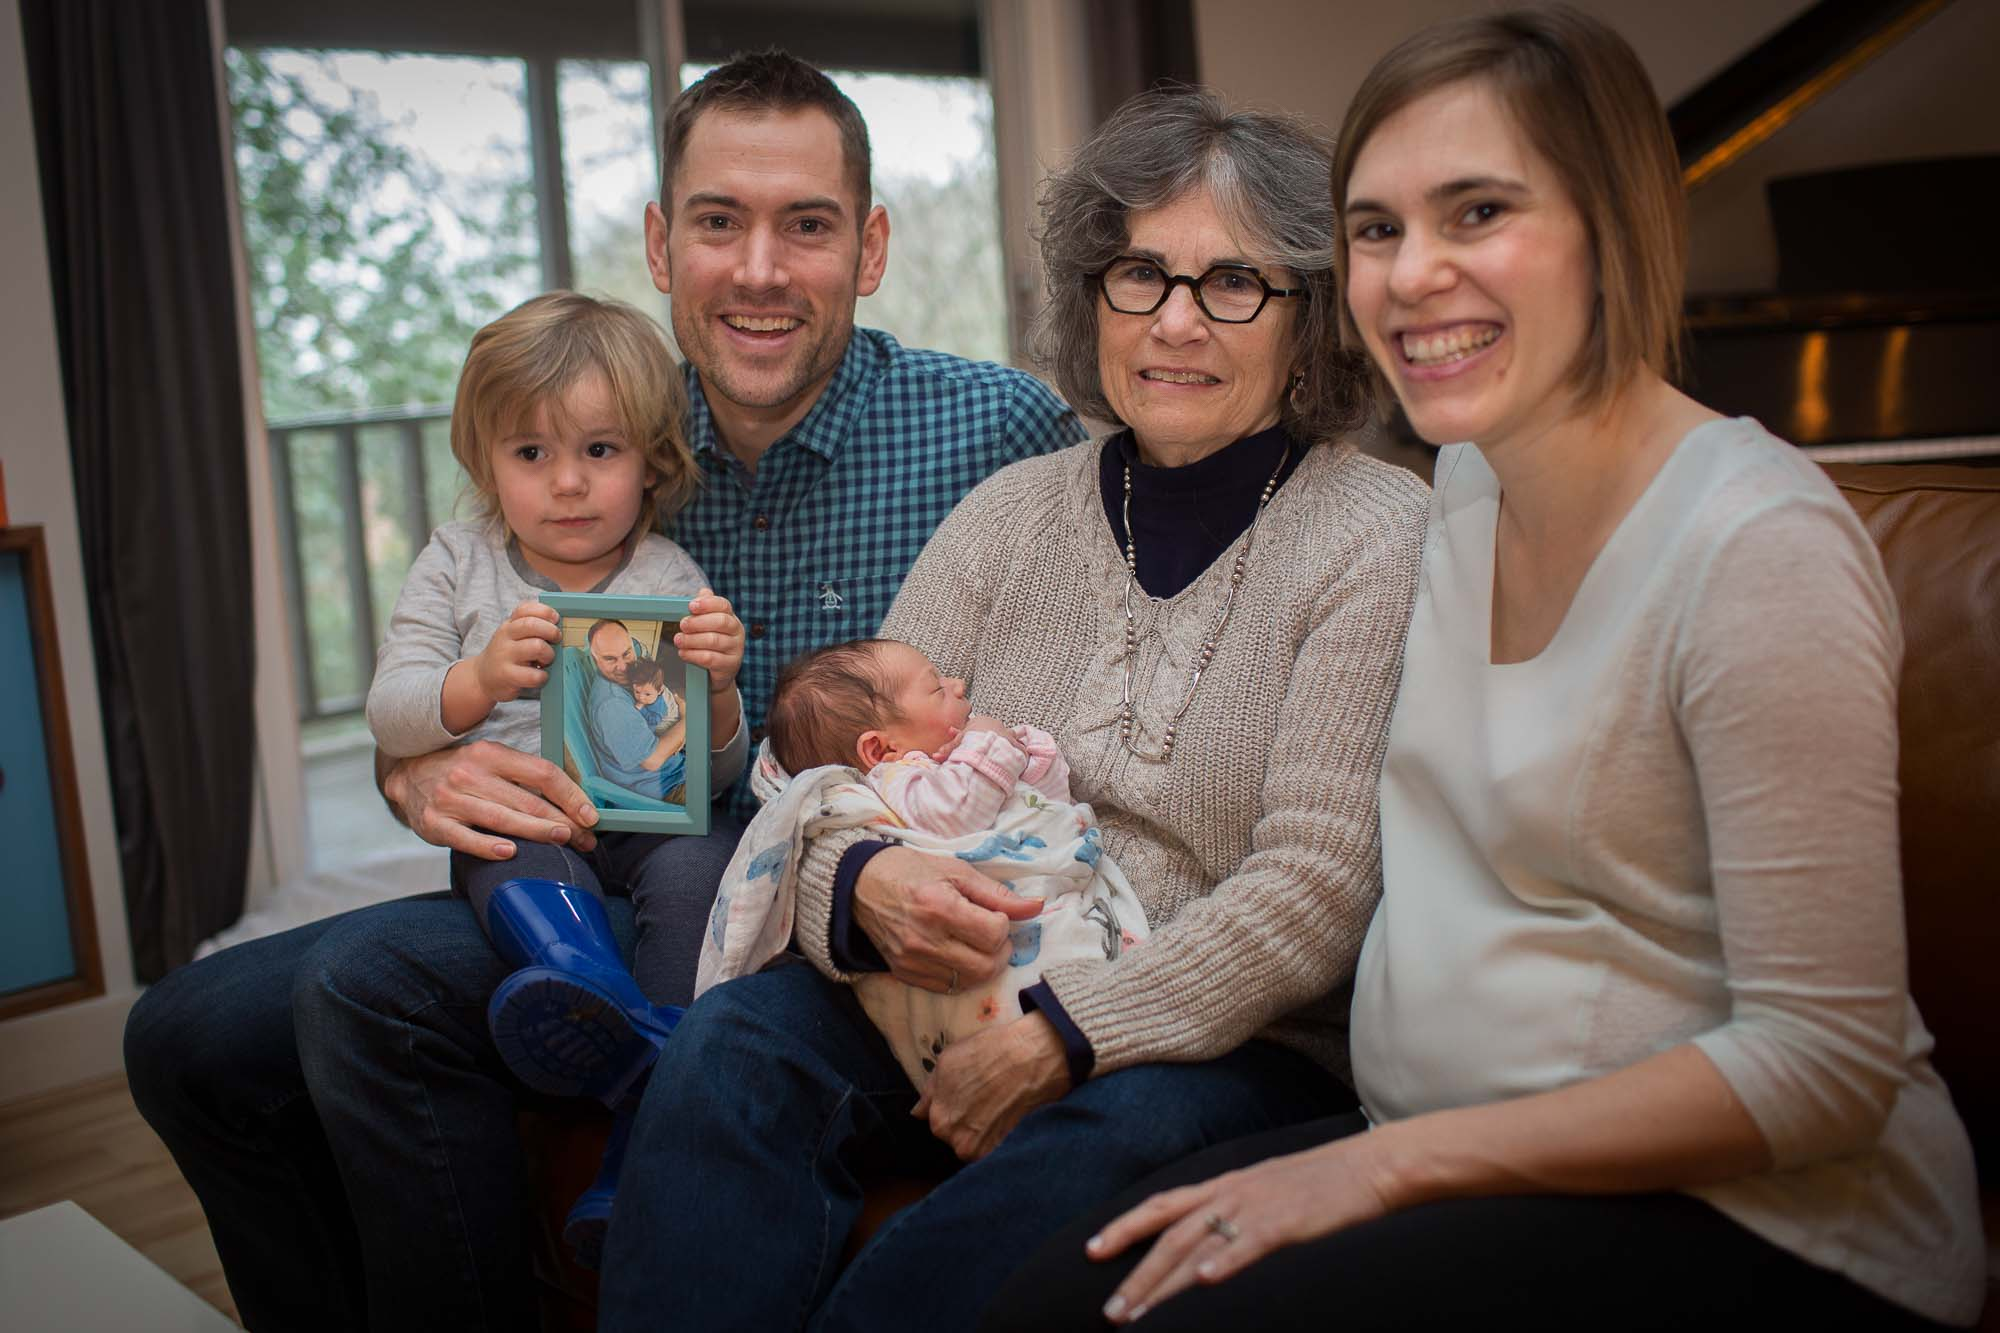 The family together with a picture of Keris's father. Austin newborn lifestyle photography.